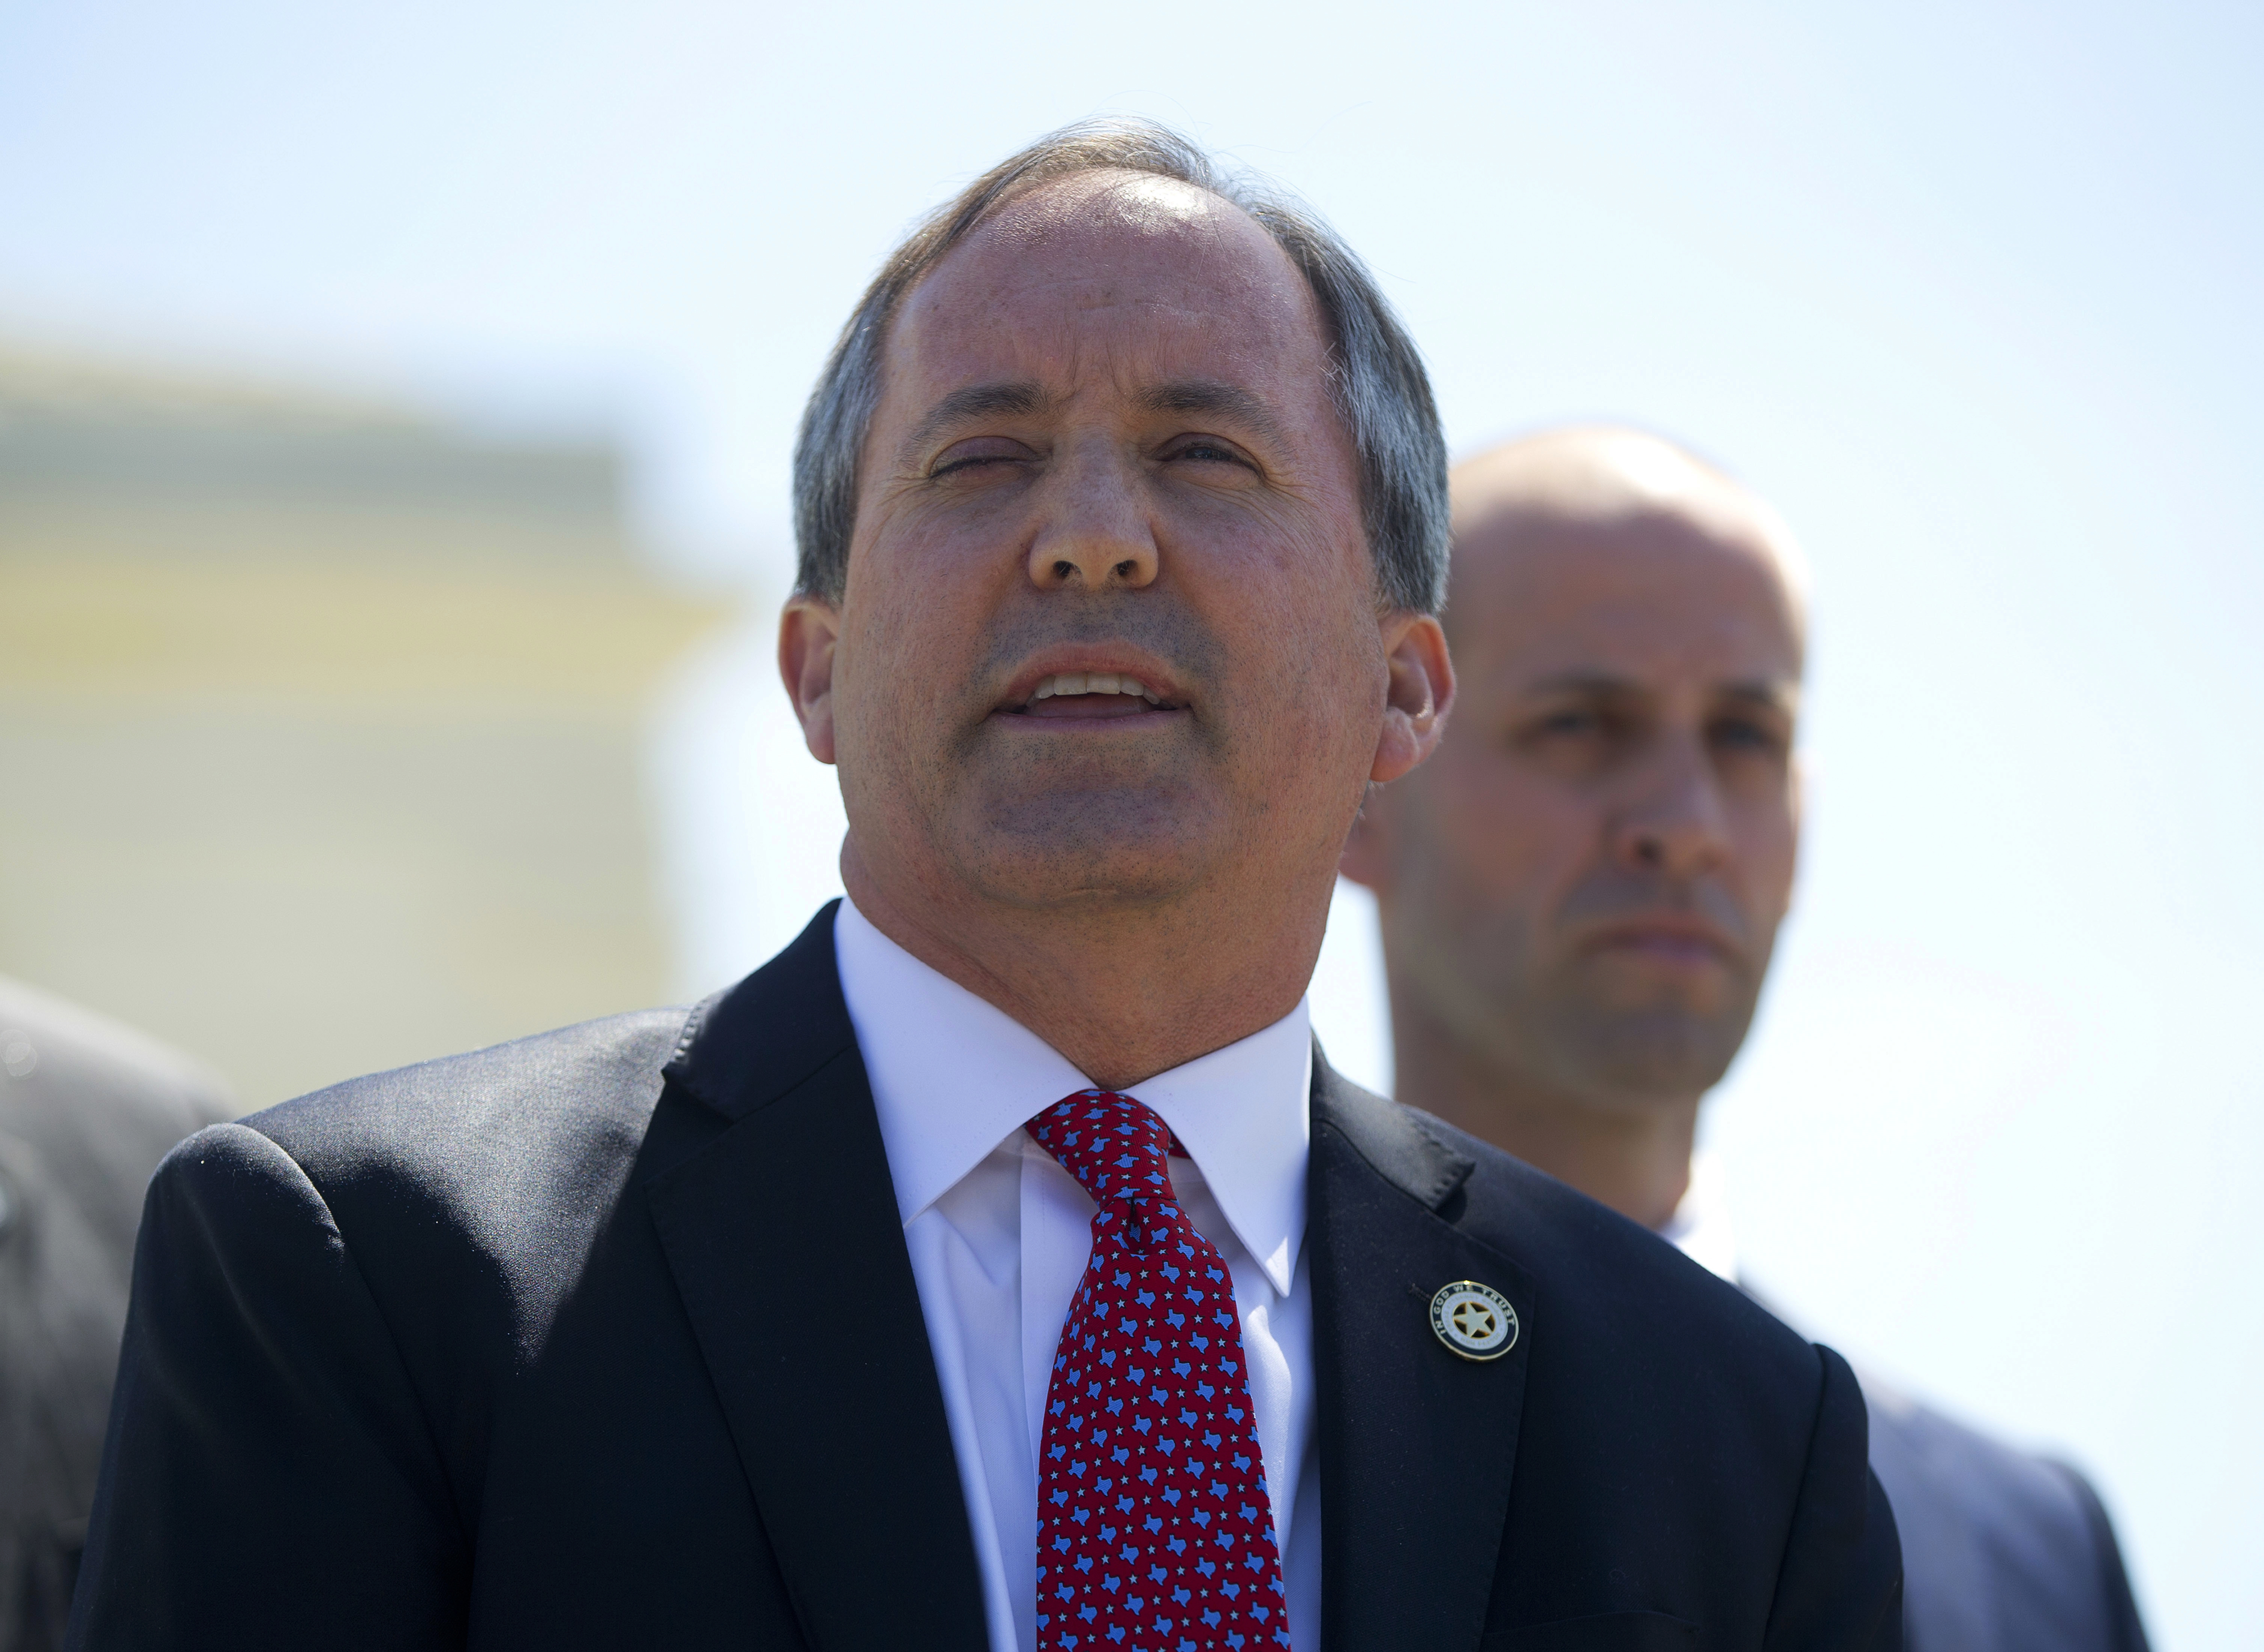 Texas Attorney General Ken Paxton meets with members of the media at the Supreme Court in Washington on April 18, 2016.